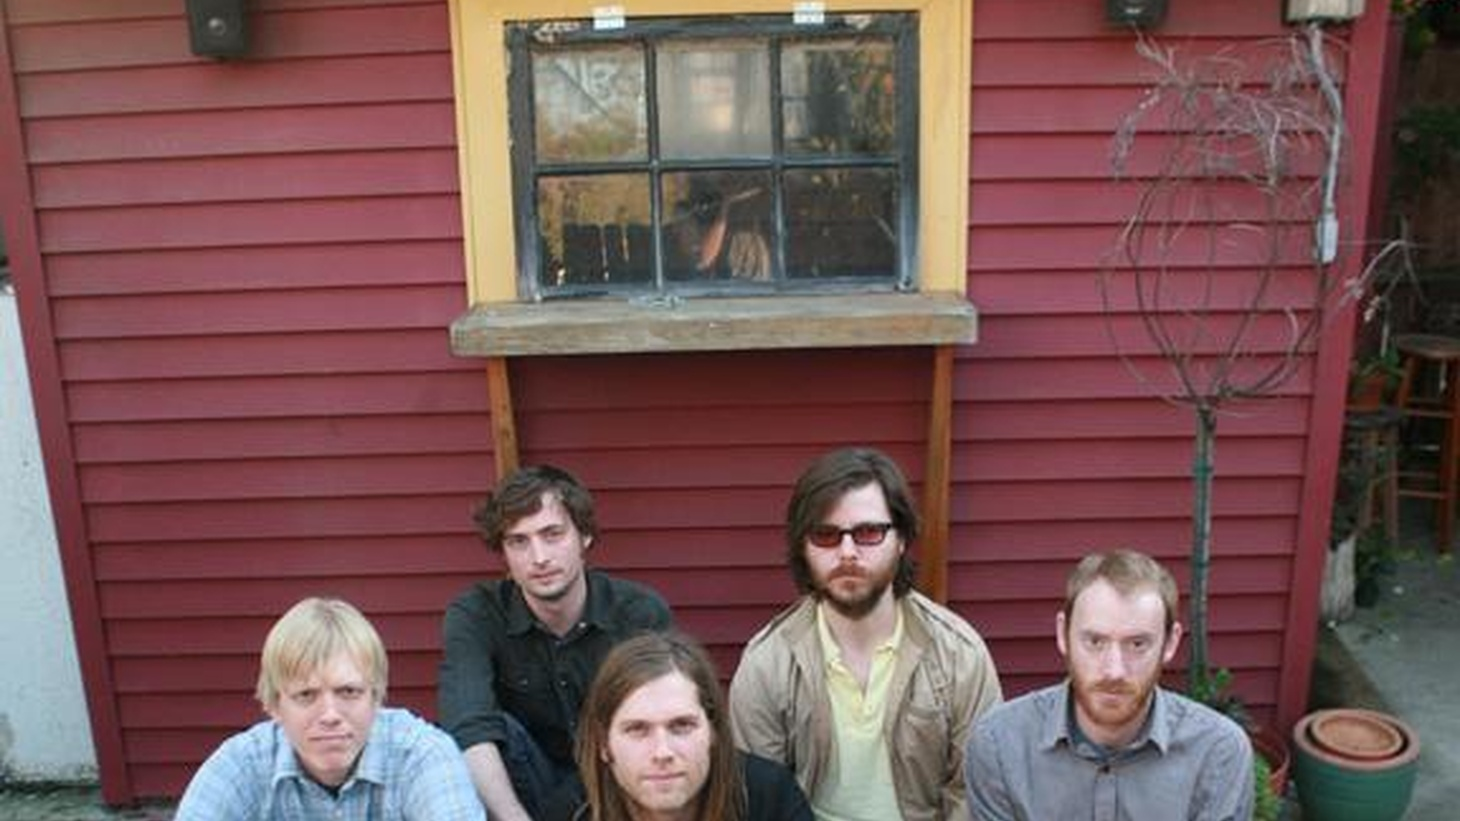 Reformed and renewed, The Fruit Bats return to perform cheery folk-pop songs from their latest release, The Ruminant Band, on Morning Becomes Eclectic at 11:15am.